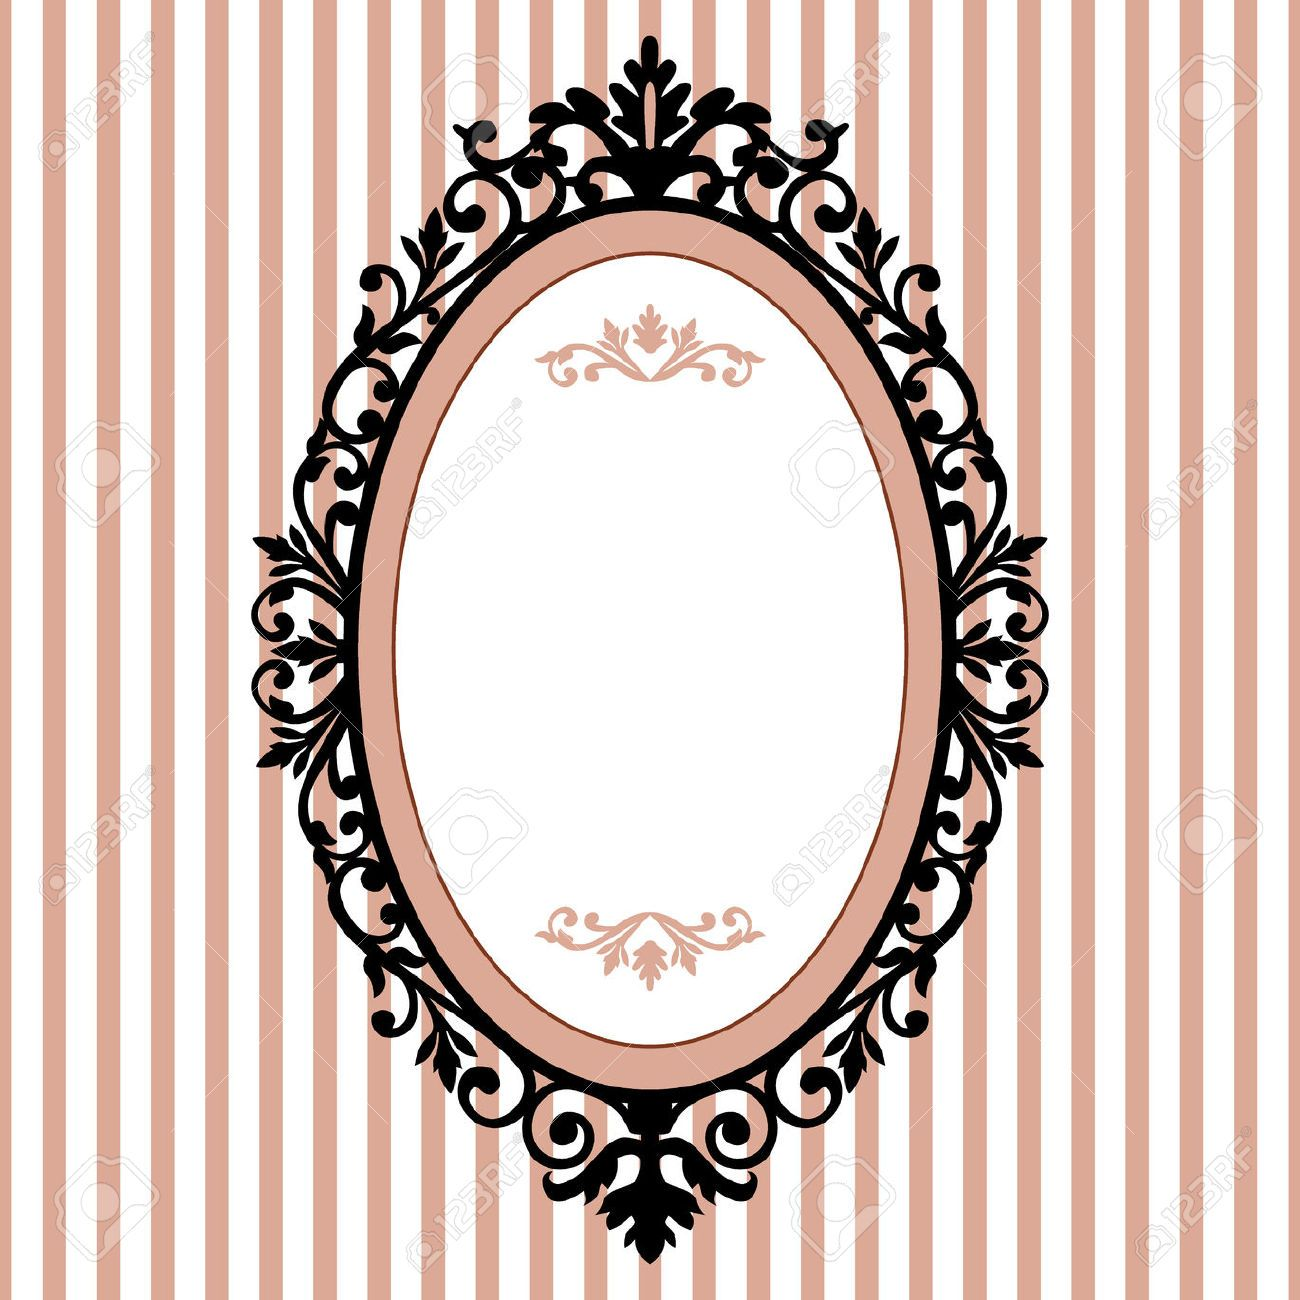 8160545-Decorative-oval-vintage-frame-Stock-Vector-victorian.jpg ...